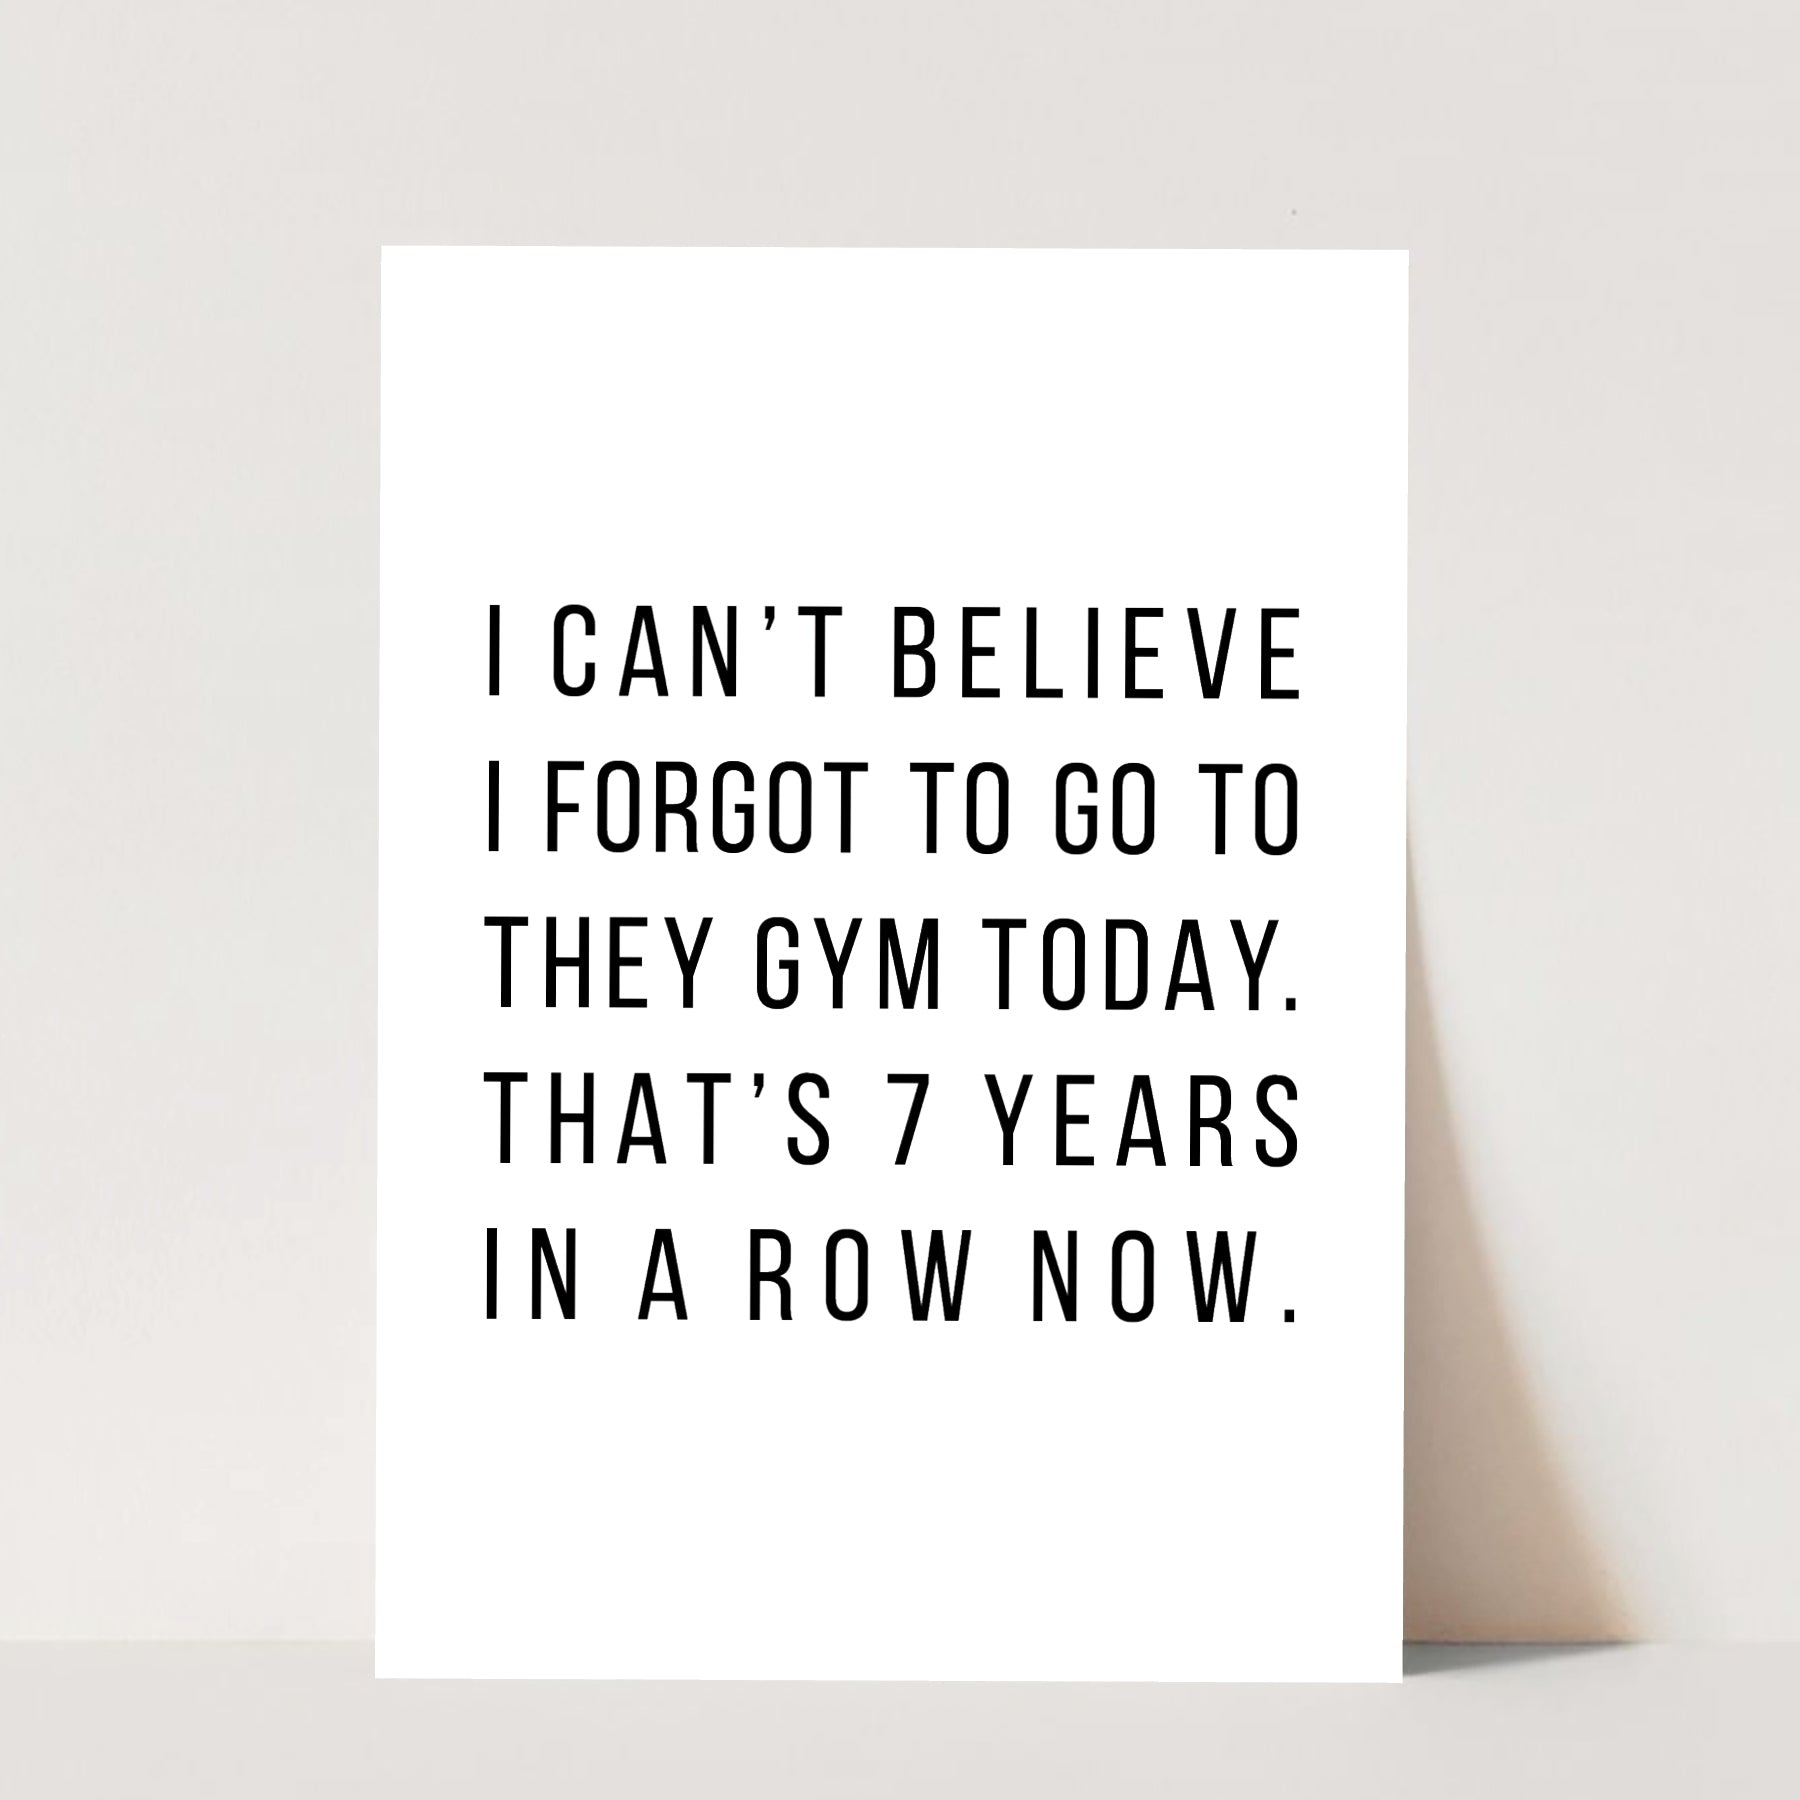 I Can't Believe I Forgot to Go to the Gym Today. That's 7 Years In a Row Now Print